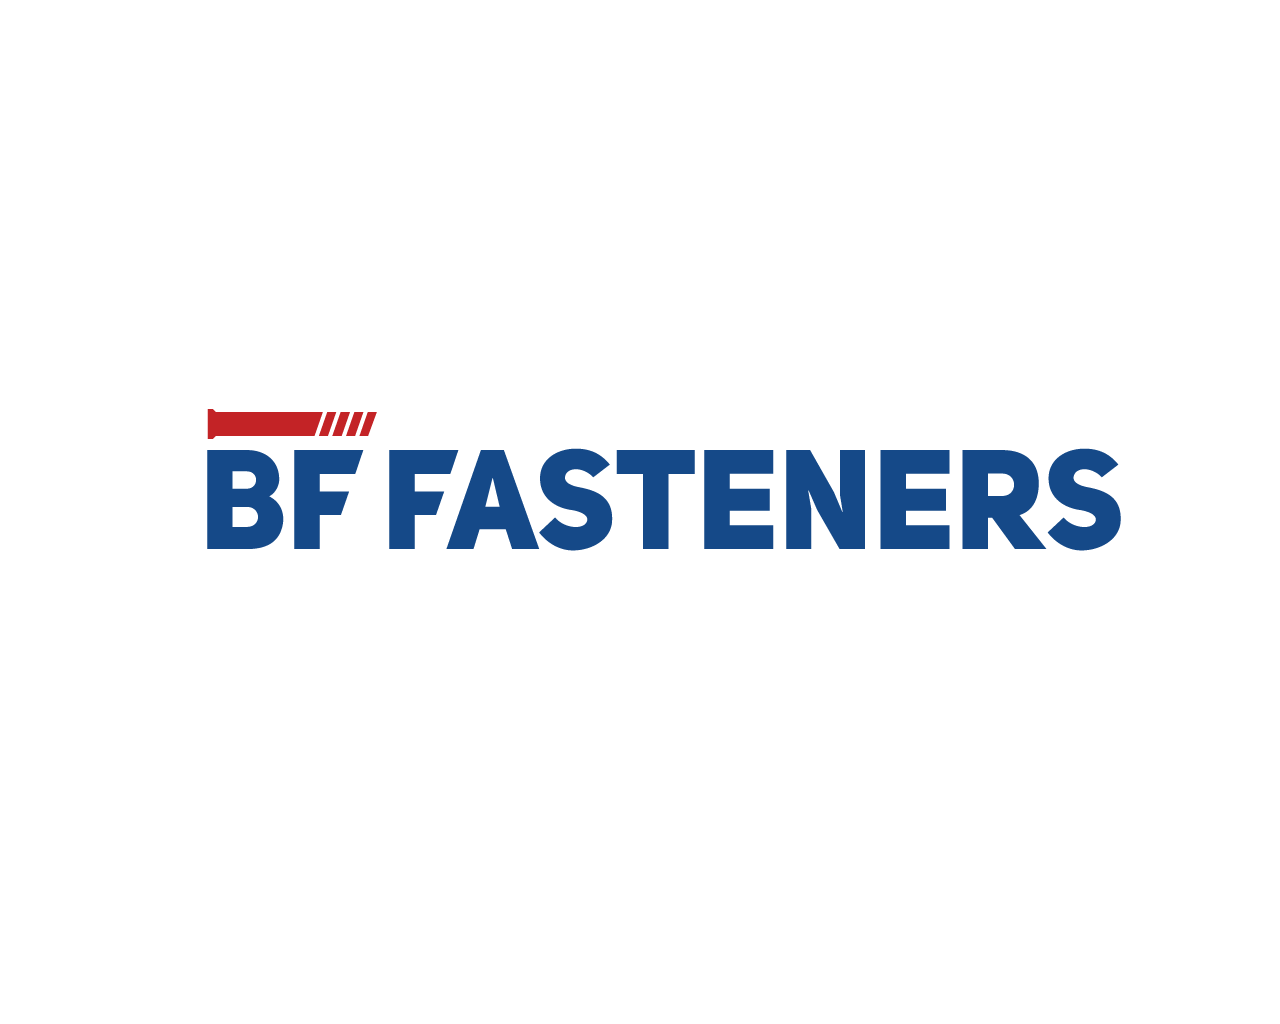 BF Fasteners